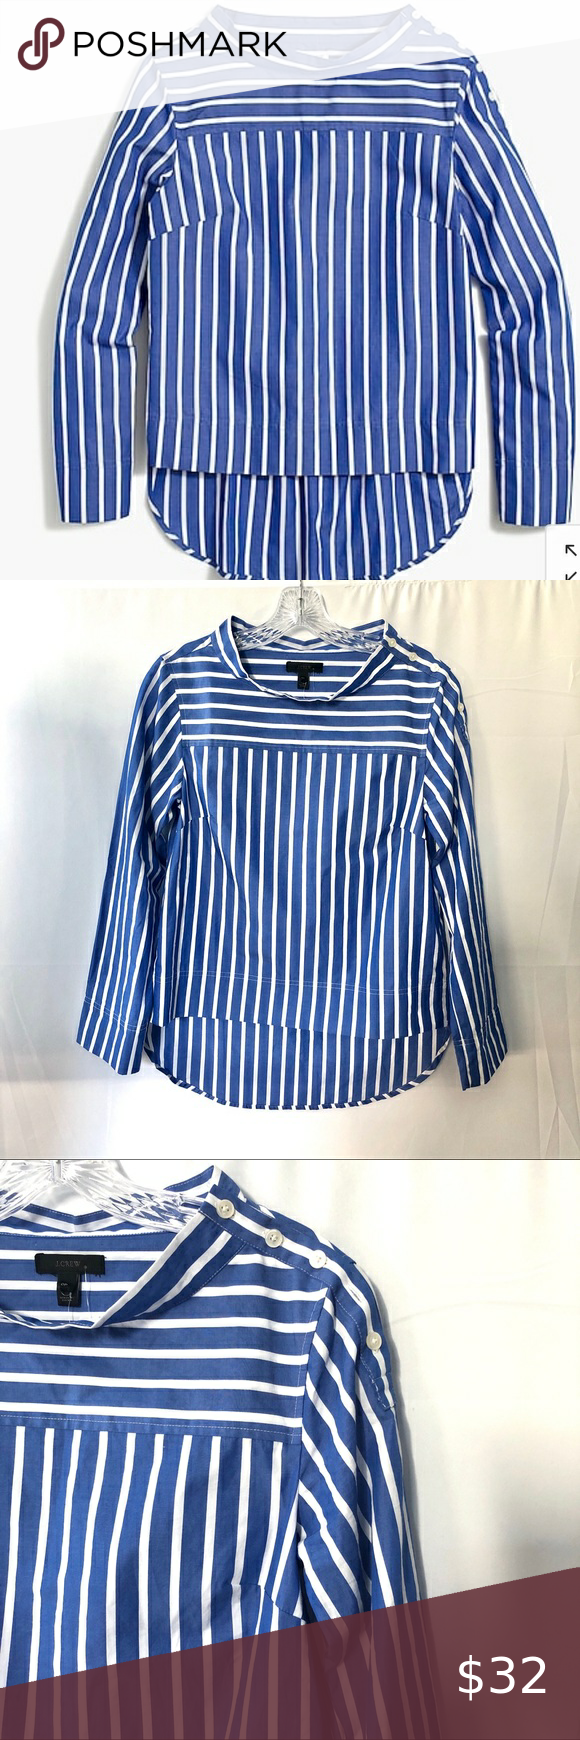 Blue And White Stripped Summer Shorts Blue And White Stripes With Pockets Comes With Belt Too Never Worn Blue And White Shorts With Tights Summer Shorts